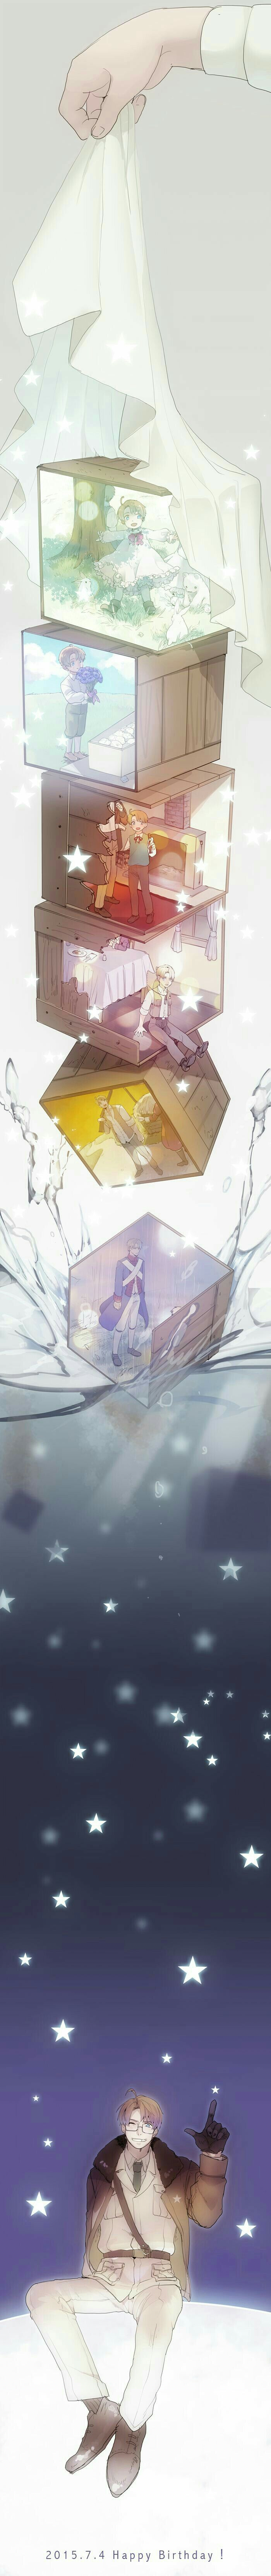 Happy Birthday America, snowing, winter, timeline, young, childhood, different ages, time lapse; Hetalia